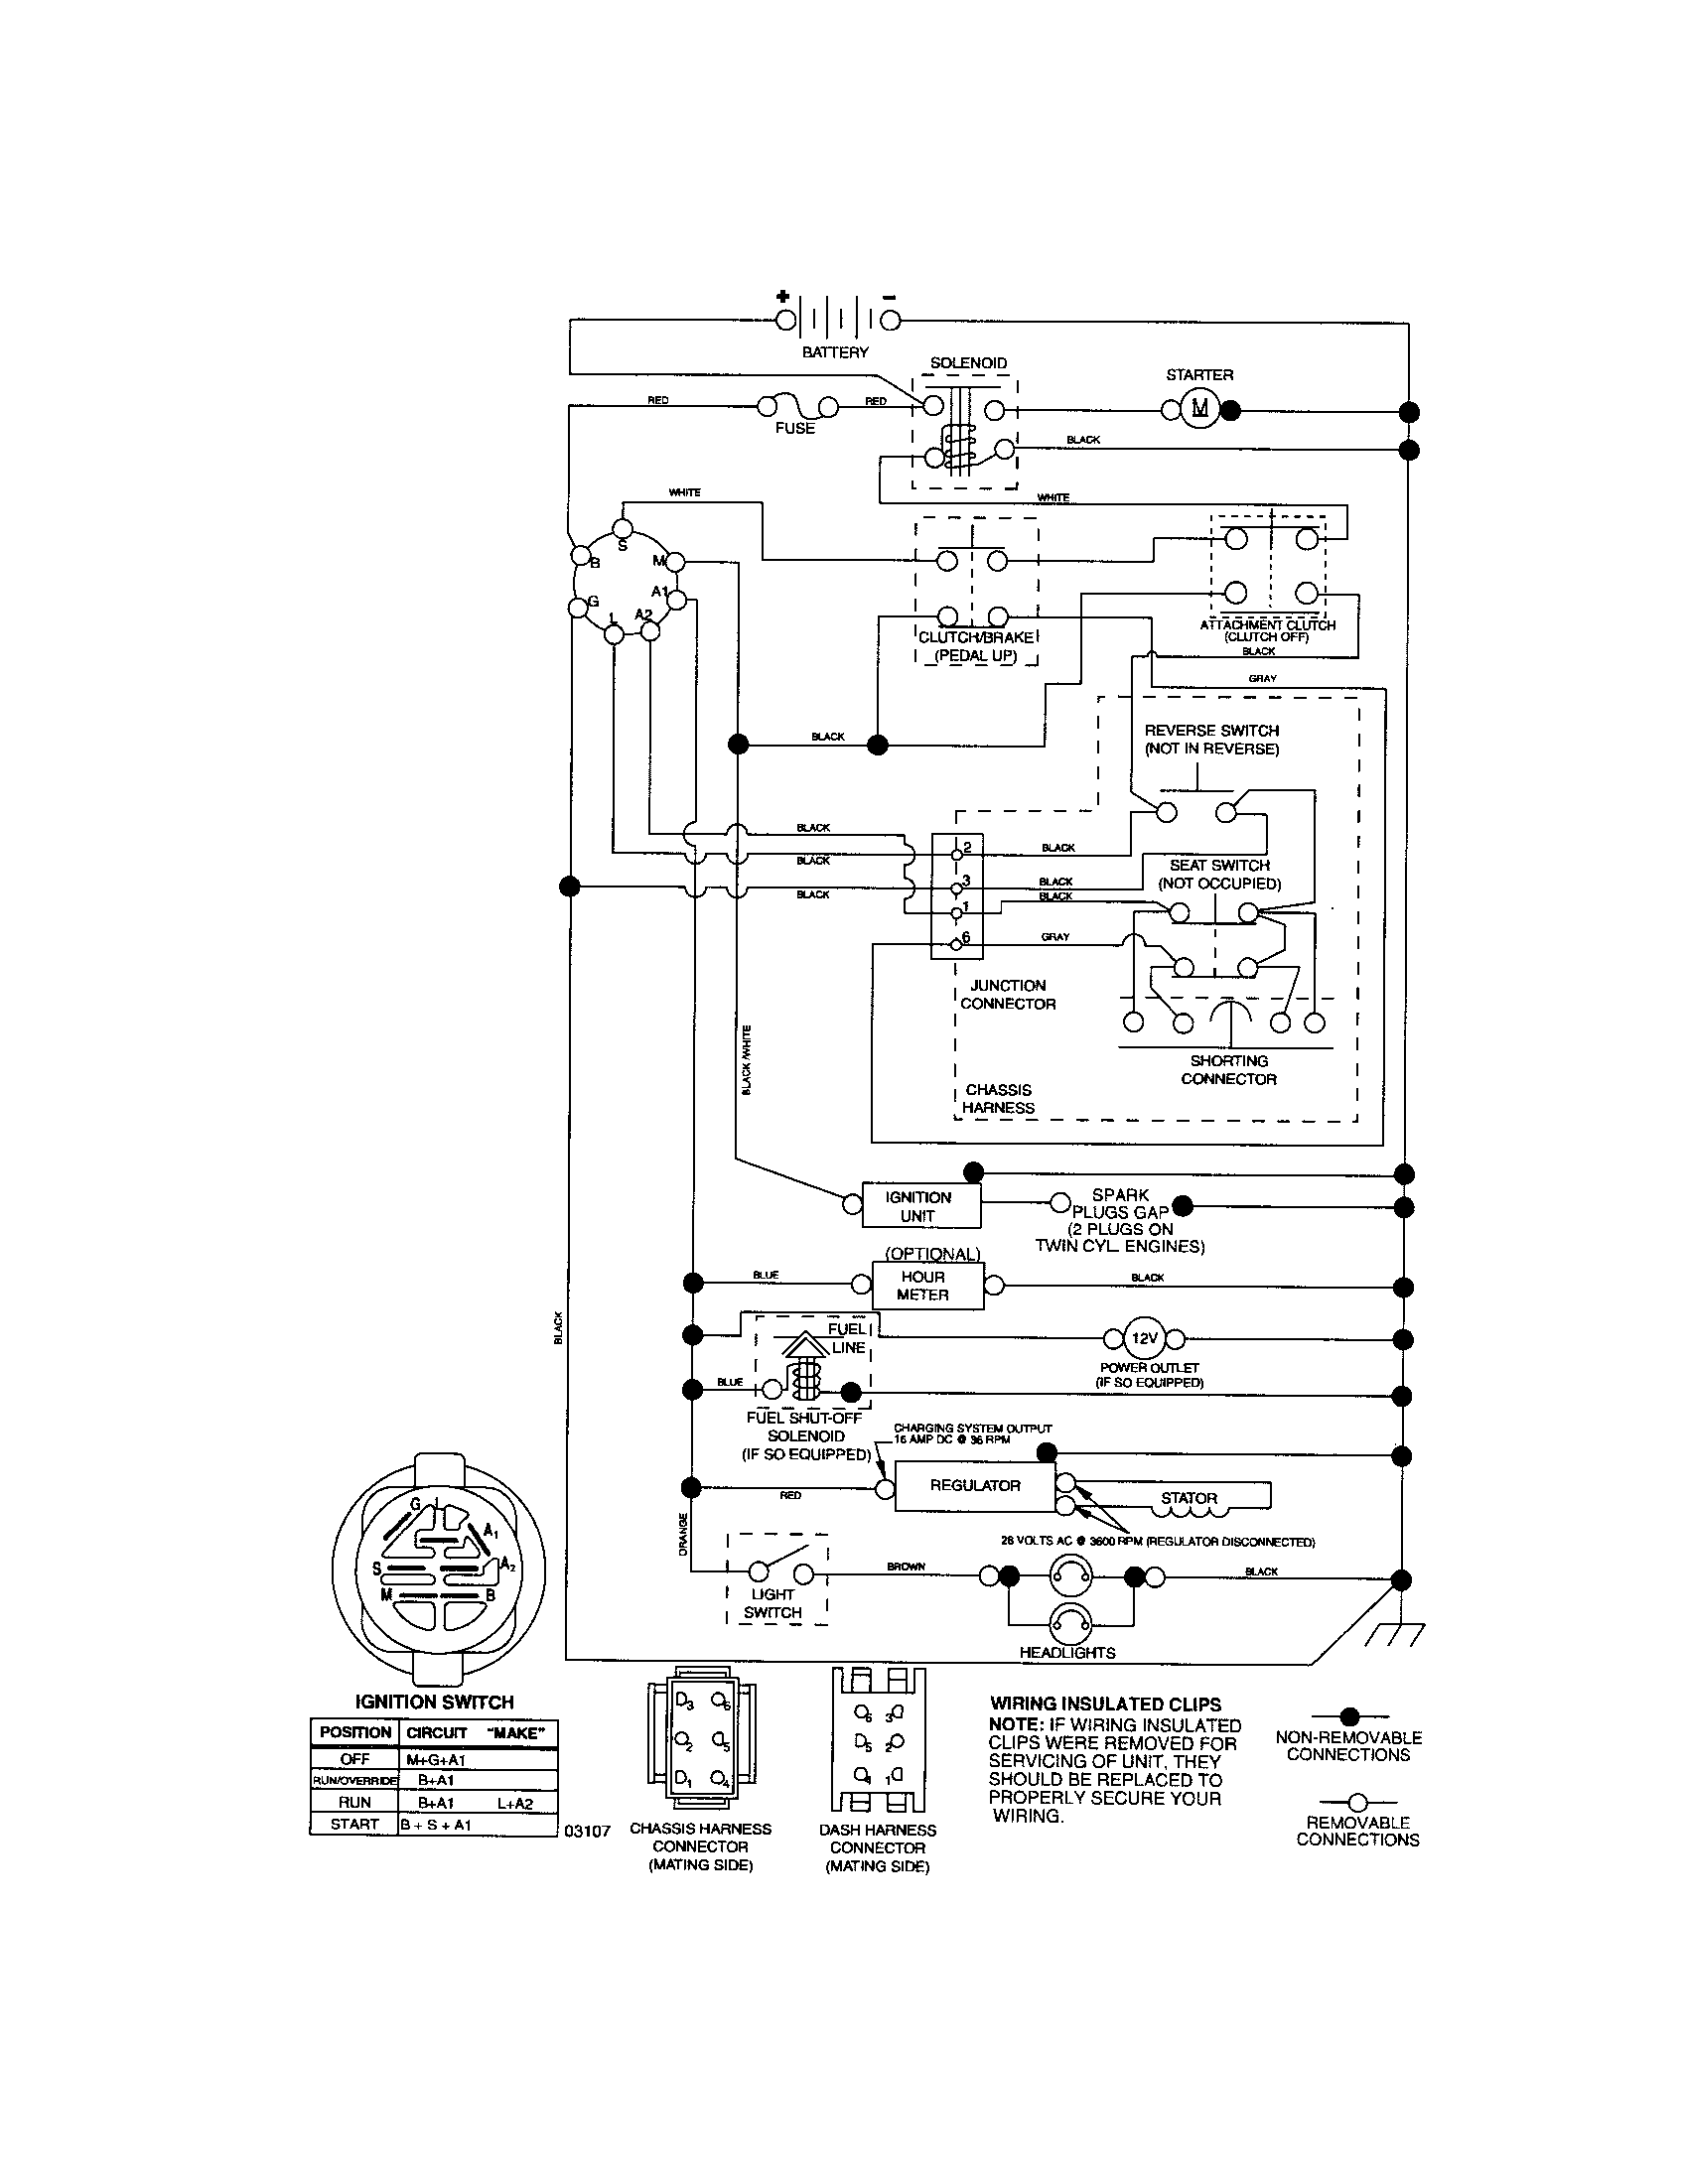 small resolution of sears lawn mower wiring diagram my wiring diagram sears kenmore sewing machine wire diagram craftsman riding